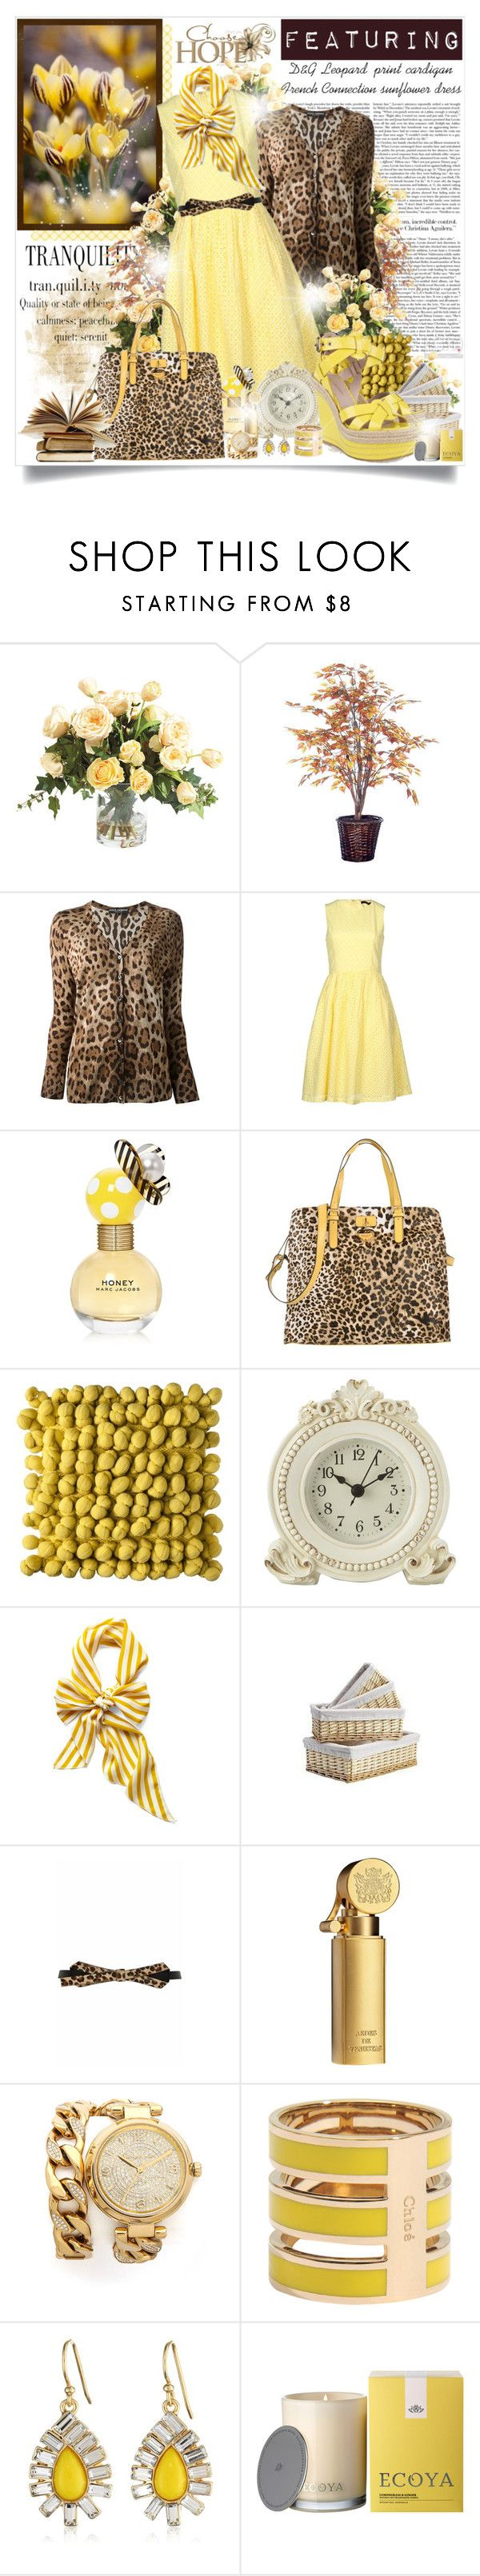 """""""Tran.quil.i.ty"""" by mrstom ❤ liked on Polyvore featuring WALL, Ethan Allen, Dolce&Gabbana, French Connection, Marc Jacobs, Blugirl, Boho Boutique, Laura Ashley, Marks & Spencer and Temperley London"""